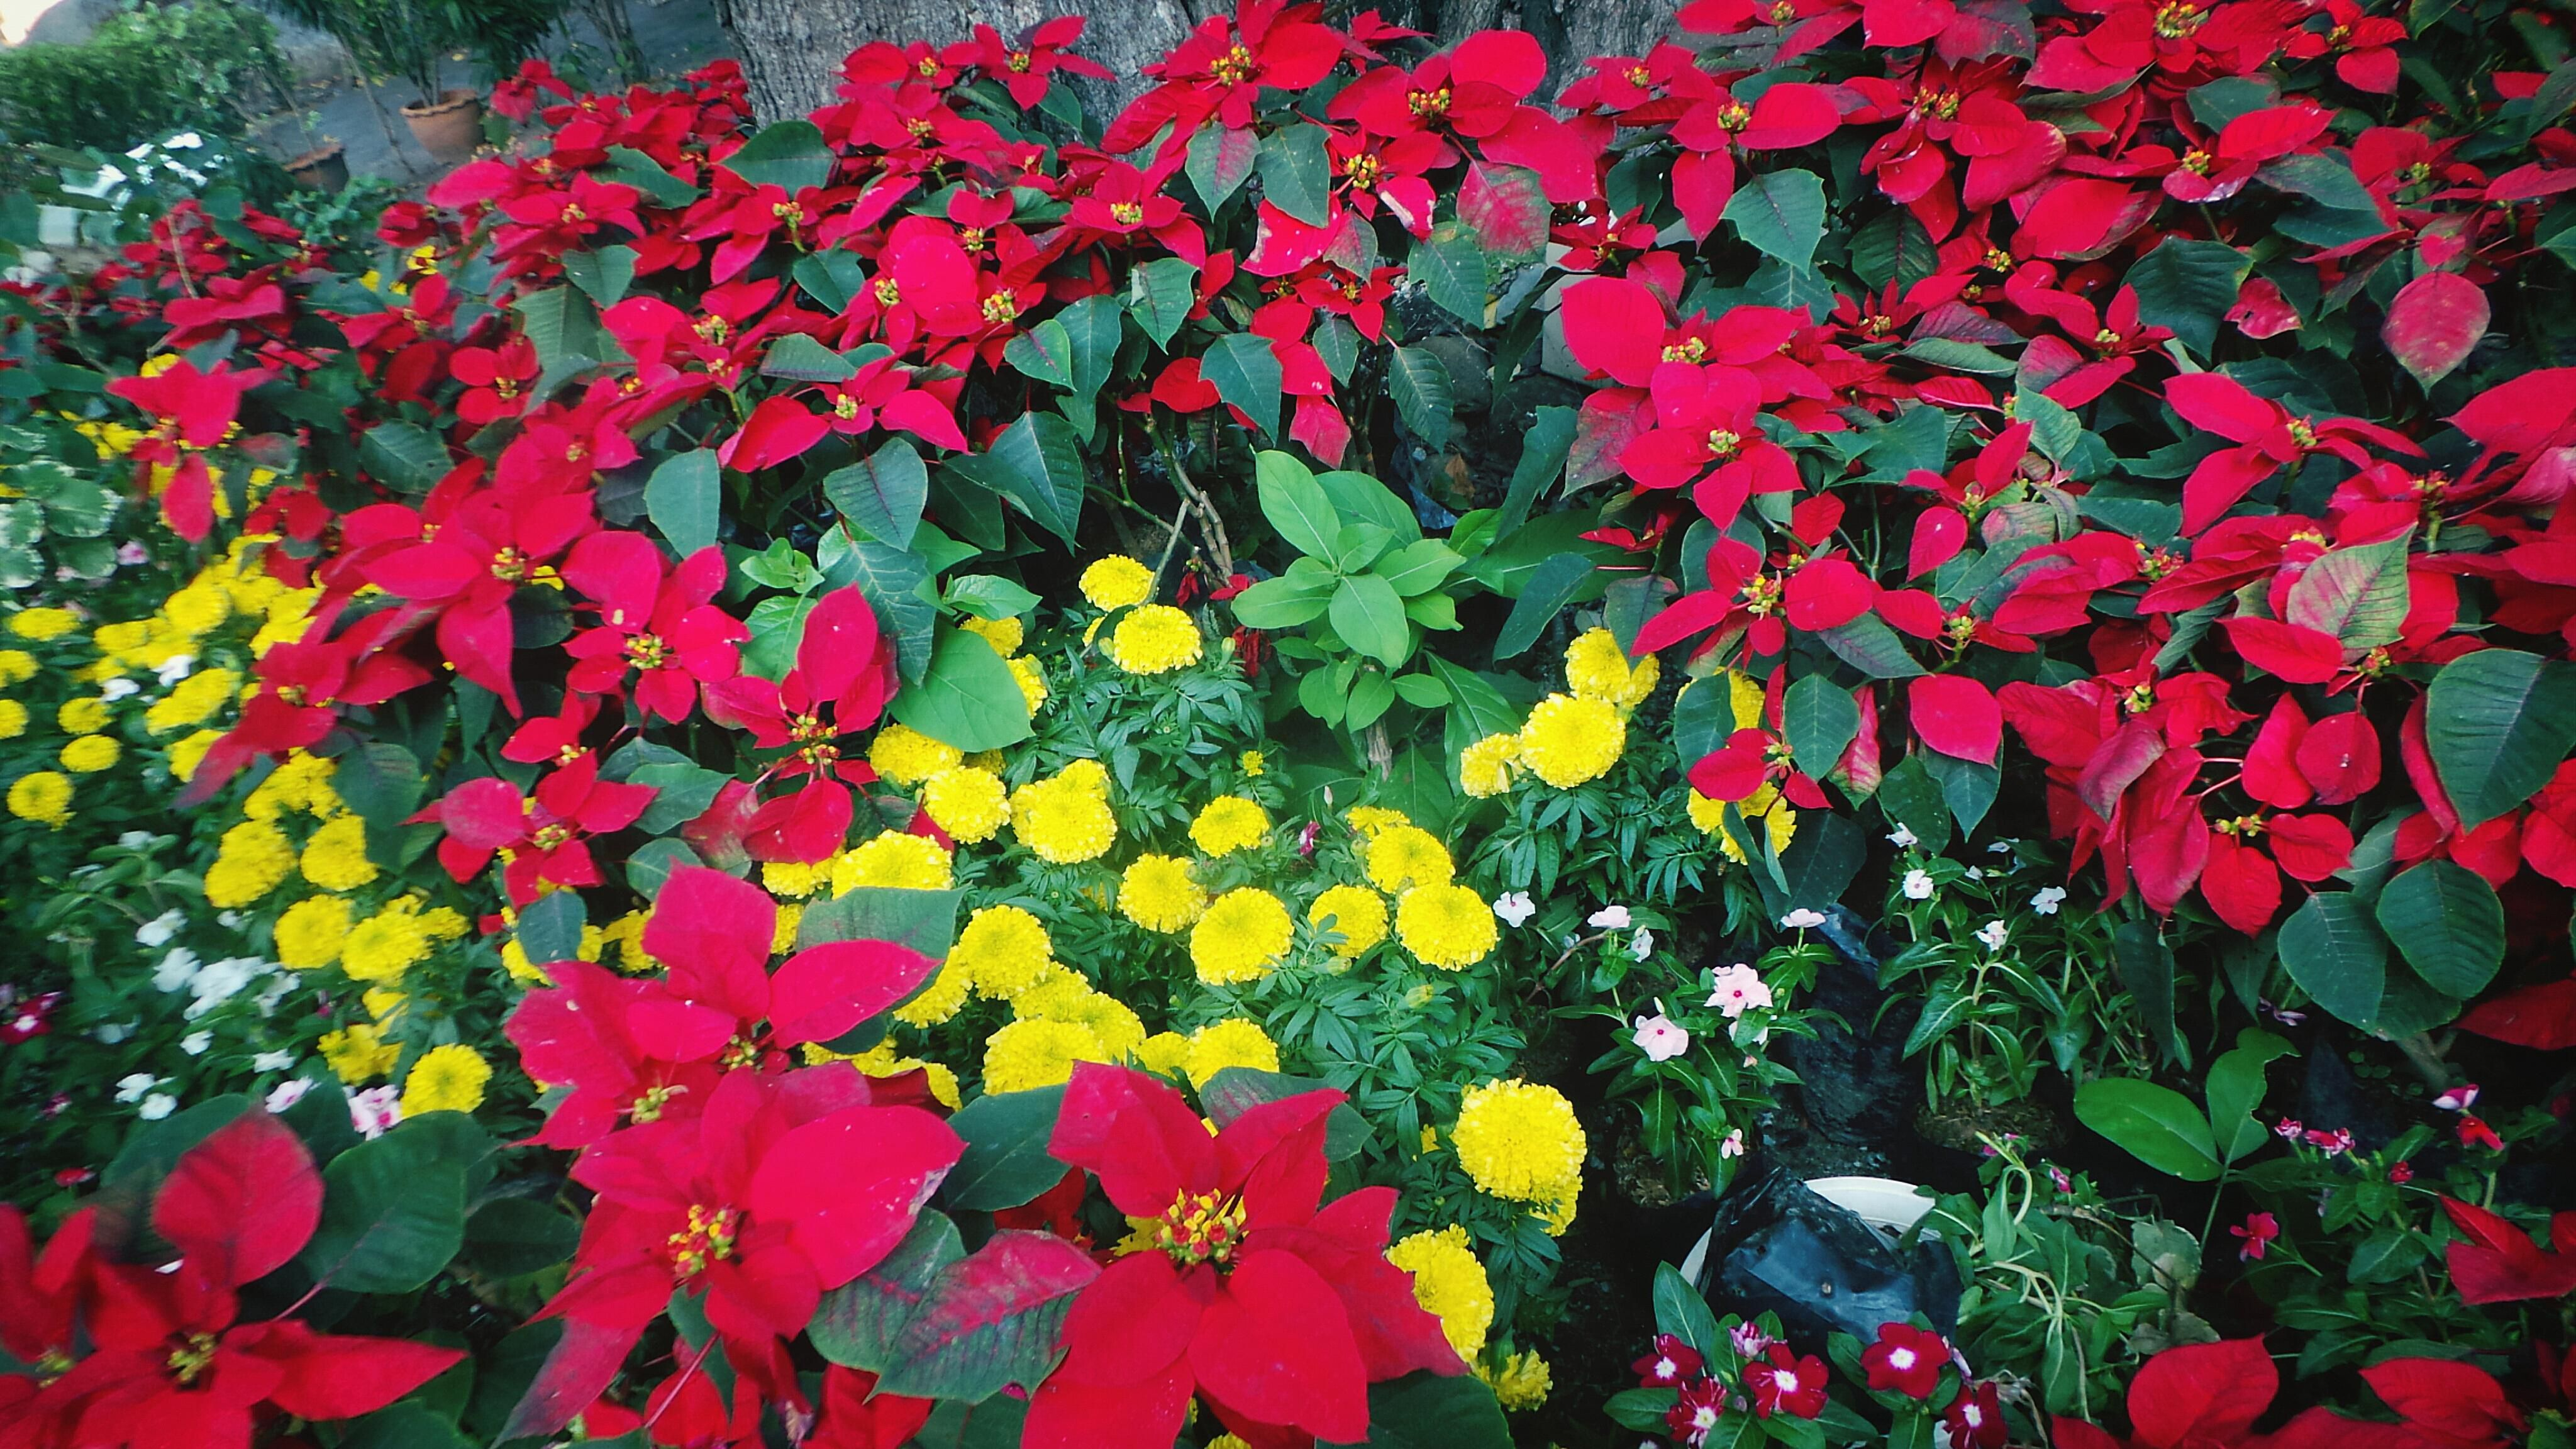 Poinsettias and yellow flowers